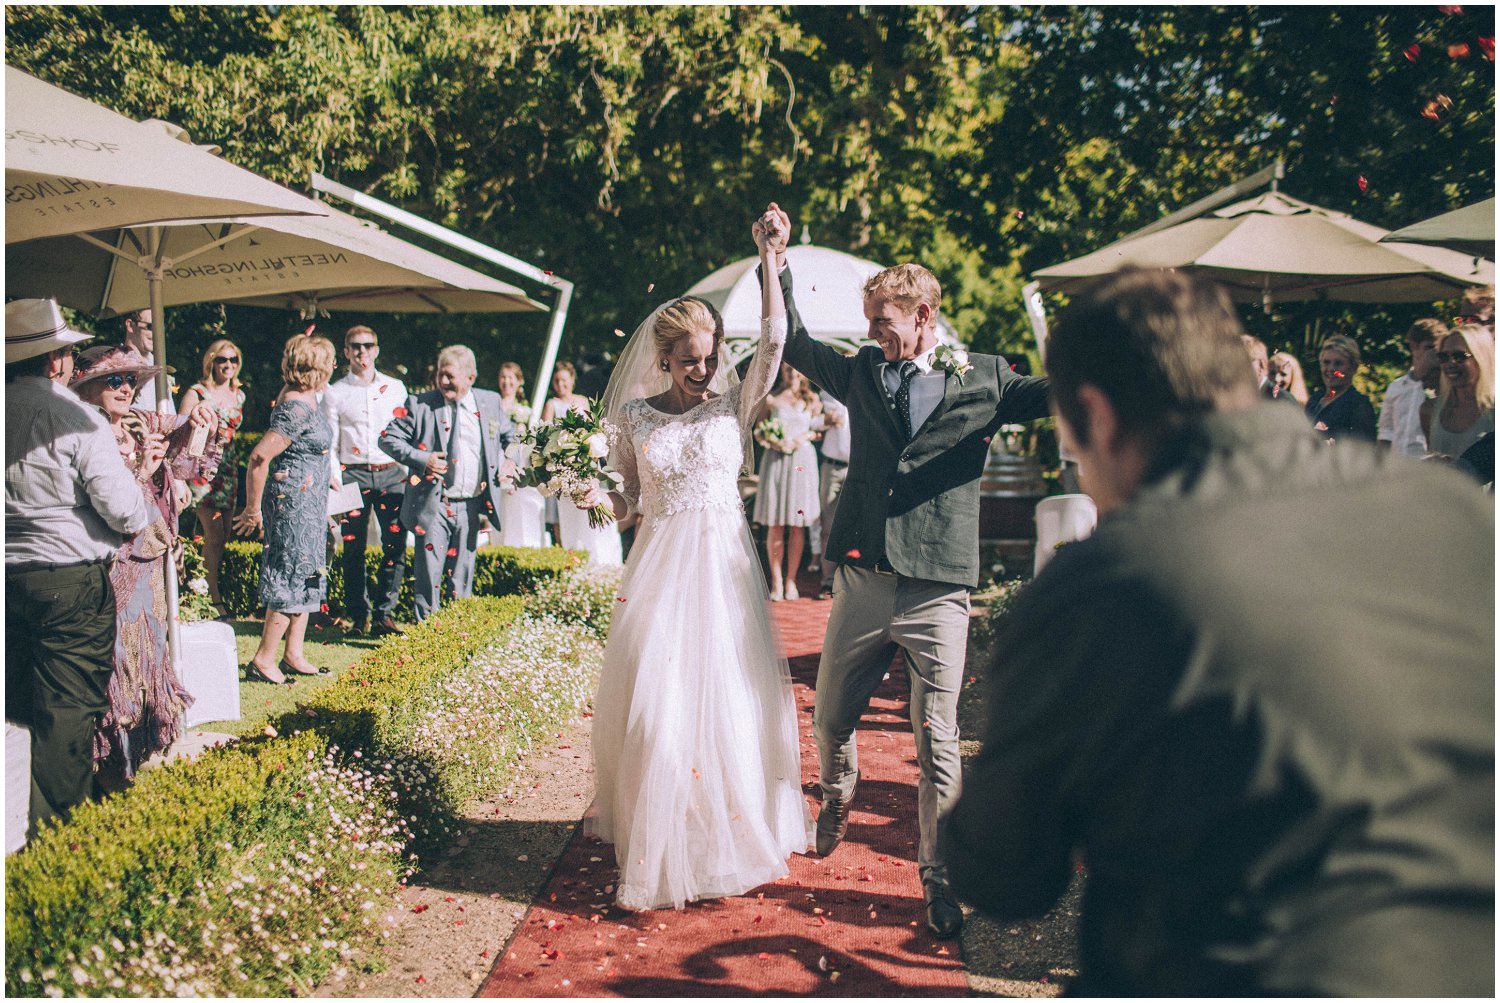 Top Wedding Photographer Cape Town South Africa Artistic Creative Documentary Wedding Photography Rue Kruger_0714.jpg